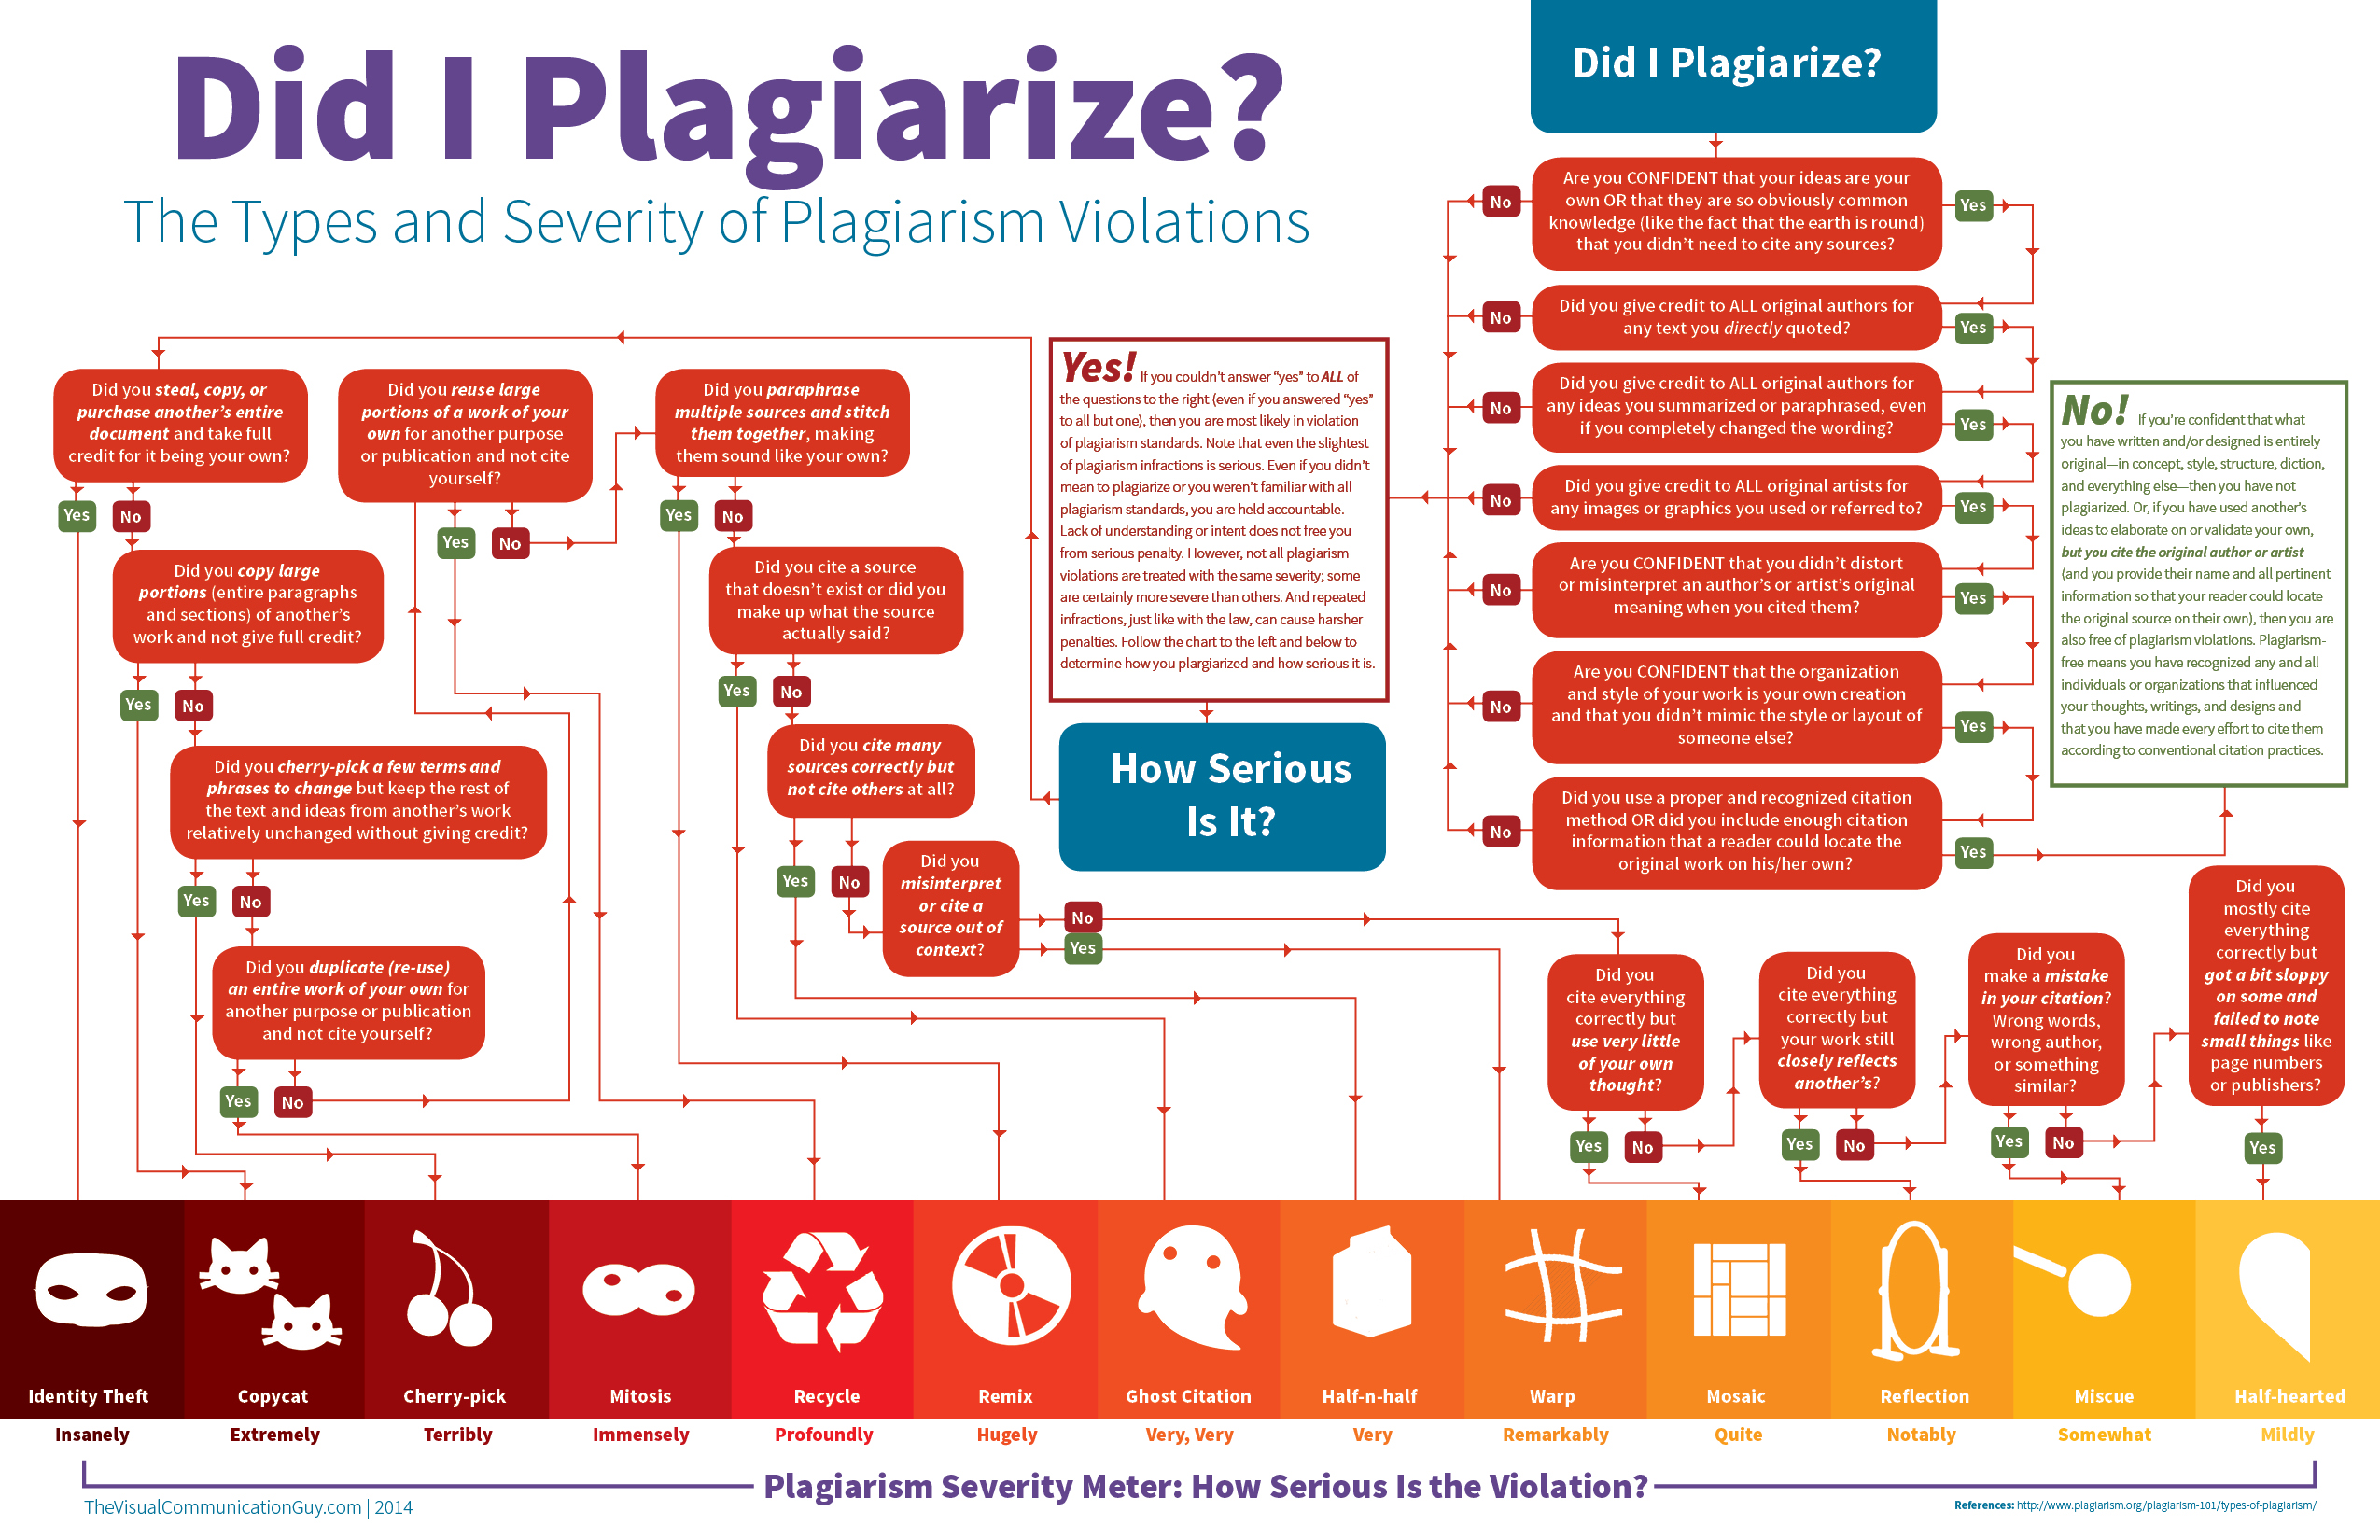 Types and severity of plagiarism violations